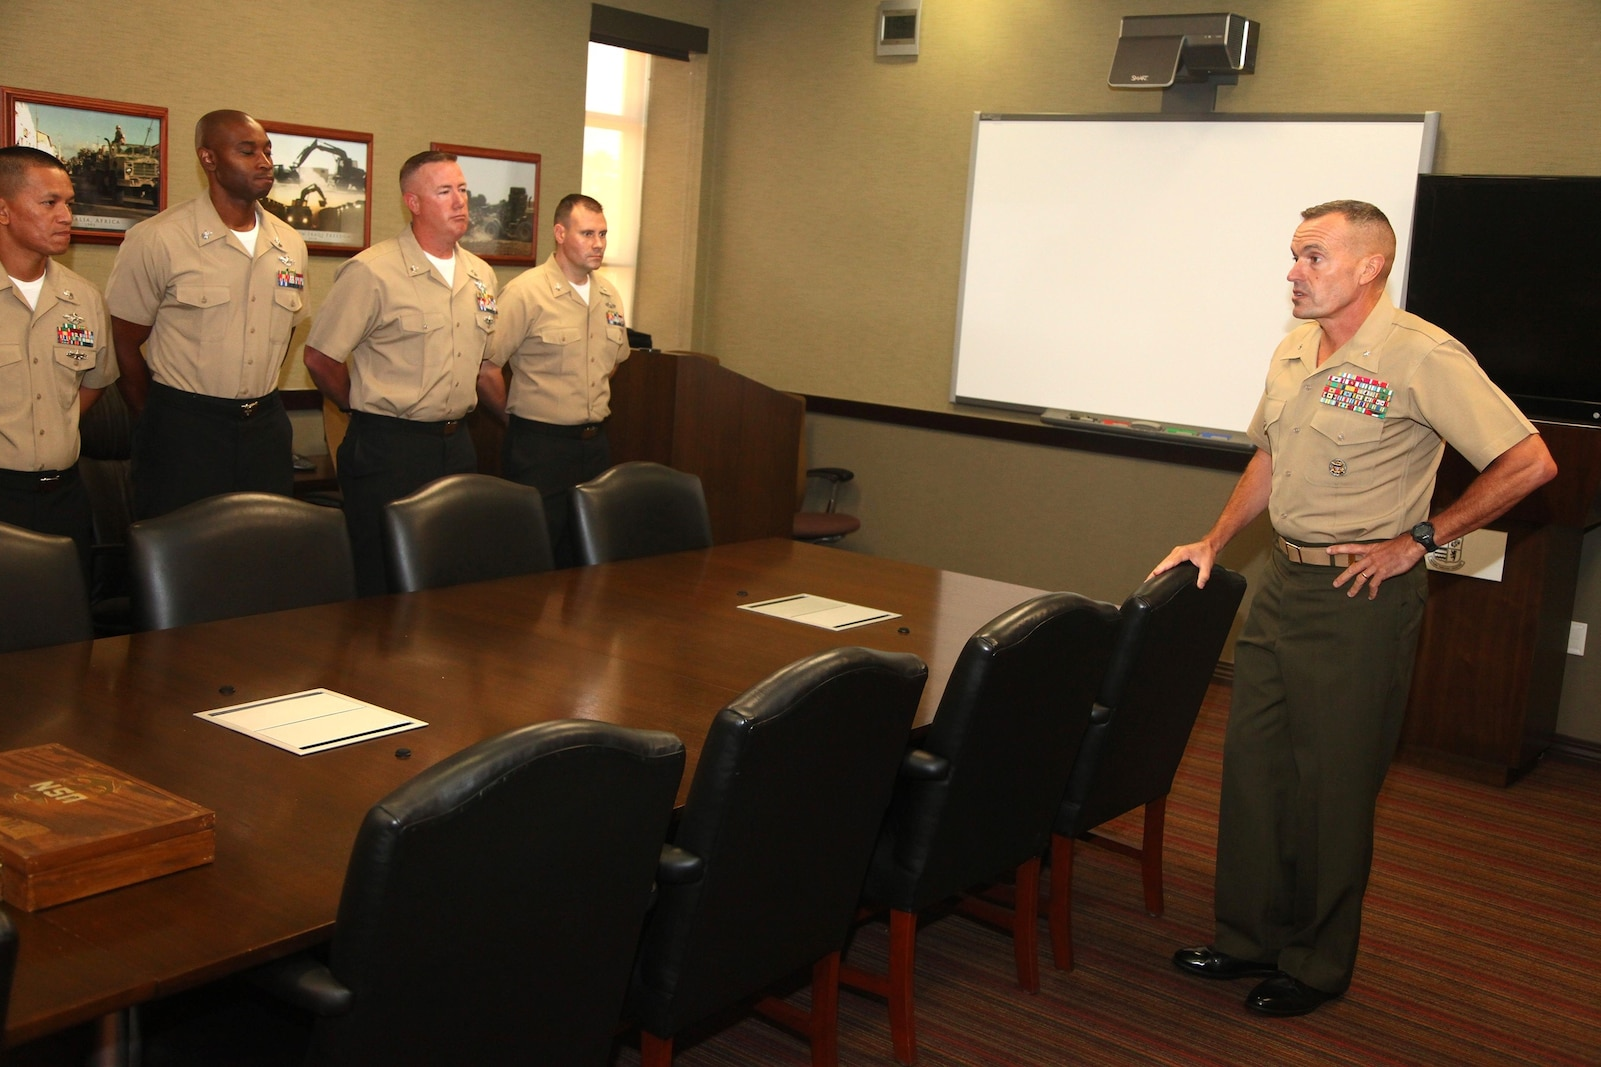 Brigadier Gen. Vincent A. Coglianese, the commanding general of 1st Marine Logistics Group, addresses sailors who are selected for promotion to Chief Petty Officer aboard Camp Pendleton, Calif., Aug. 2, 2013. Out of the 54 possible candidates, only 14 sailors were selected for promotion.